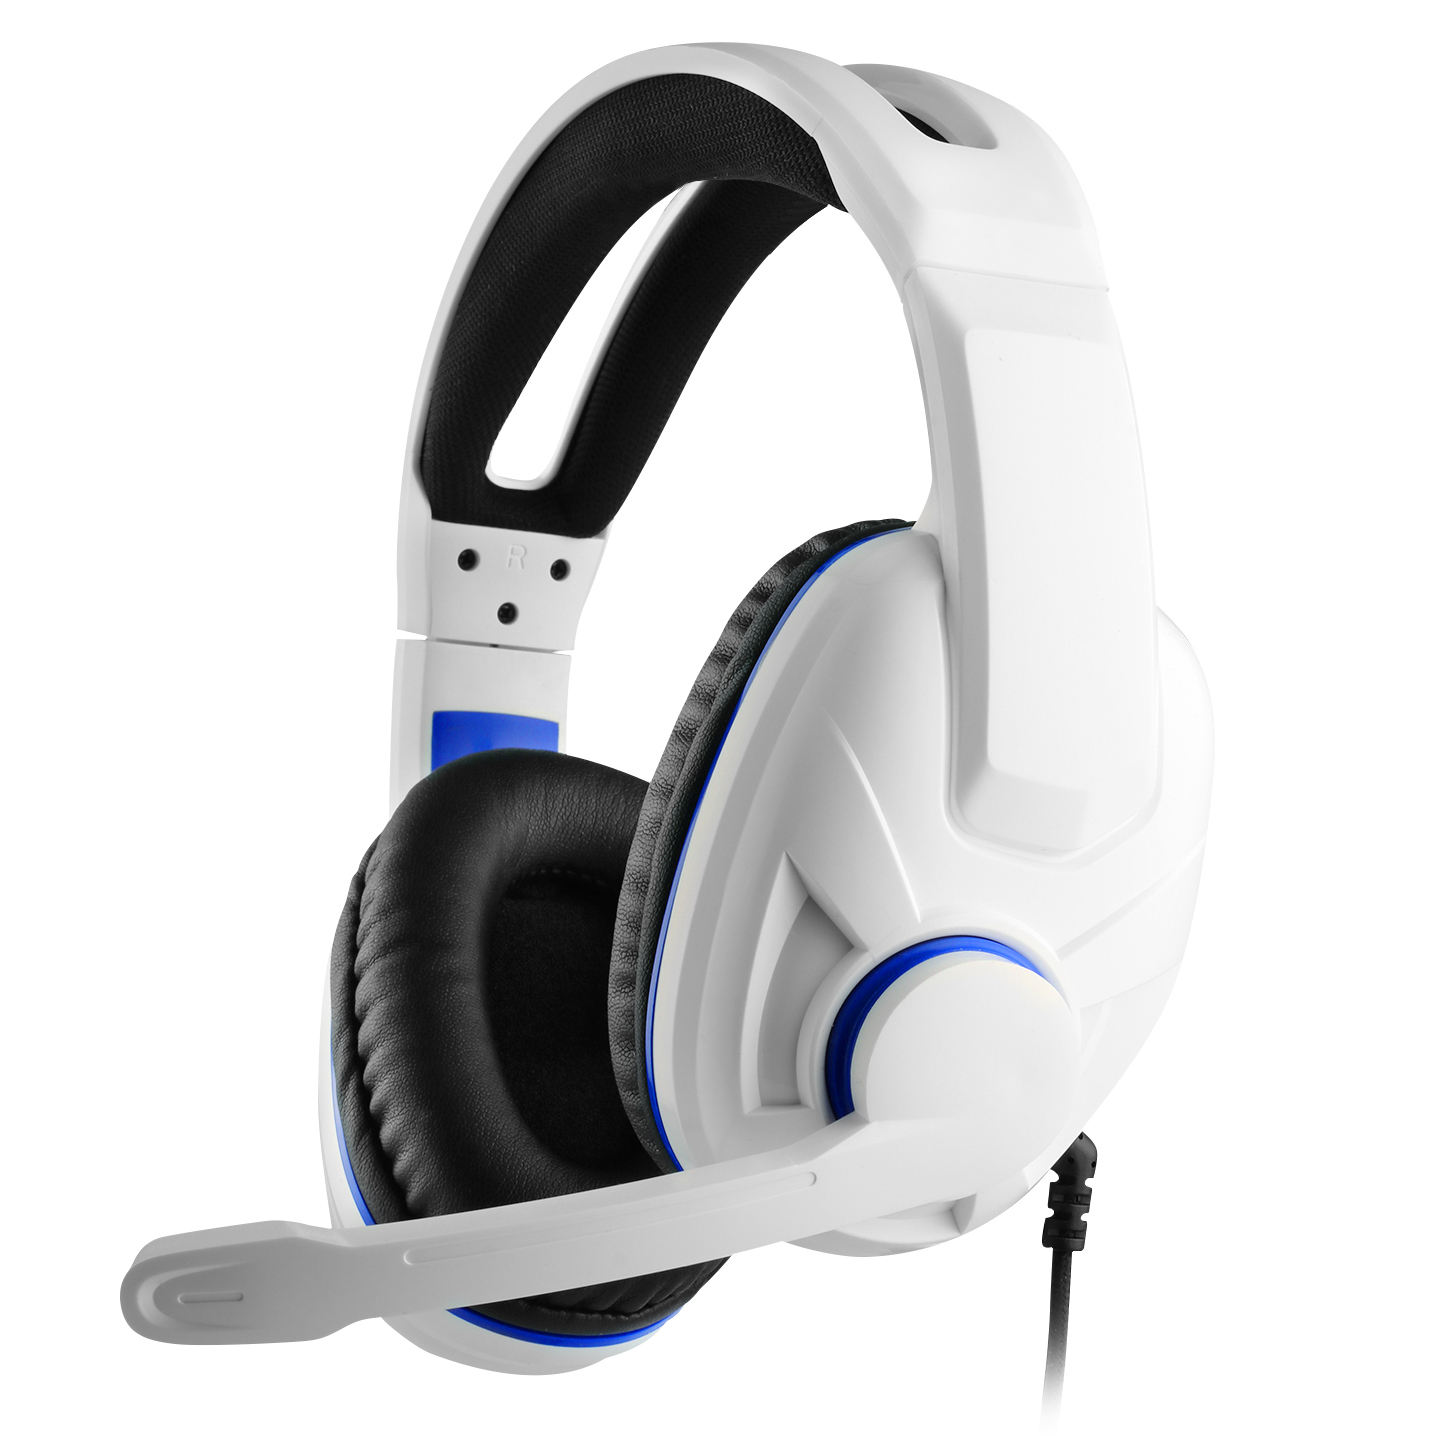 3.5mm Wired Gaming Headset Over-Ear Surround Stereo Game Headphone with Mic Compatible with PS4 Xbox One for PS5 PC Mac